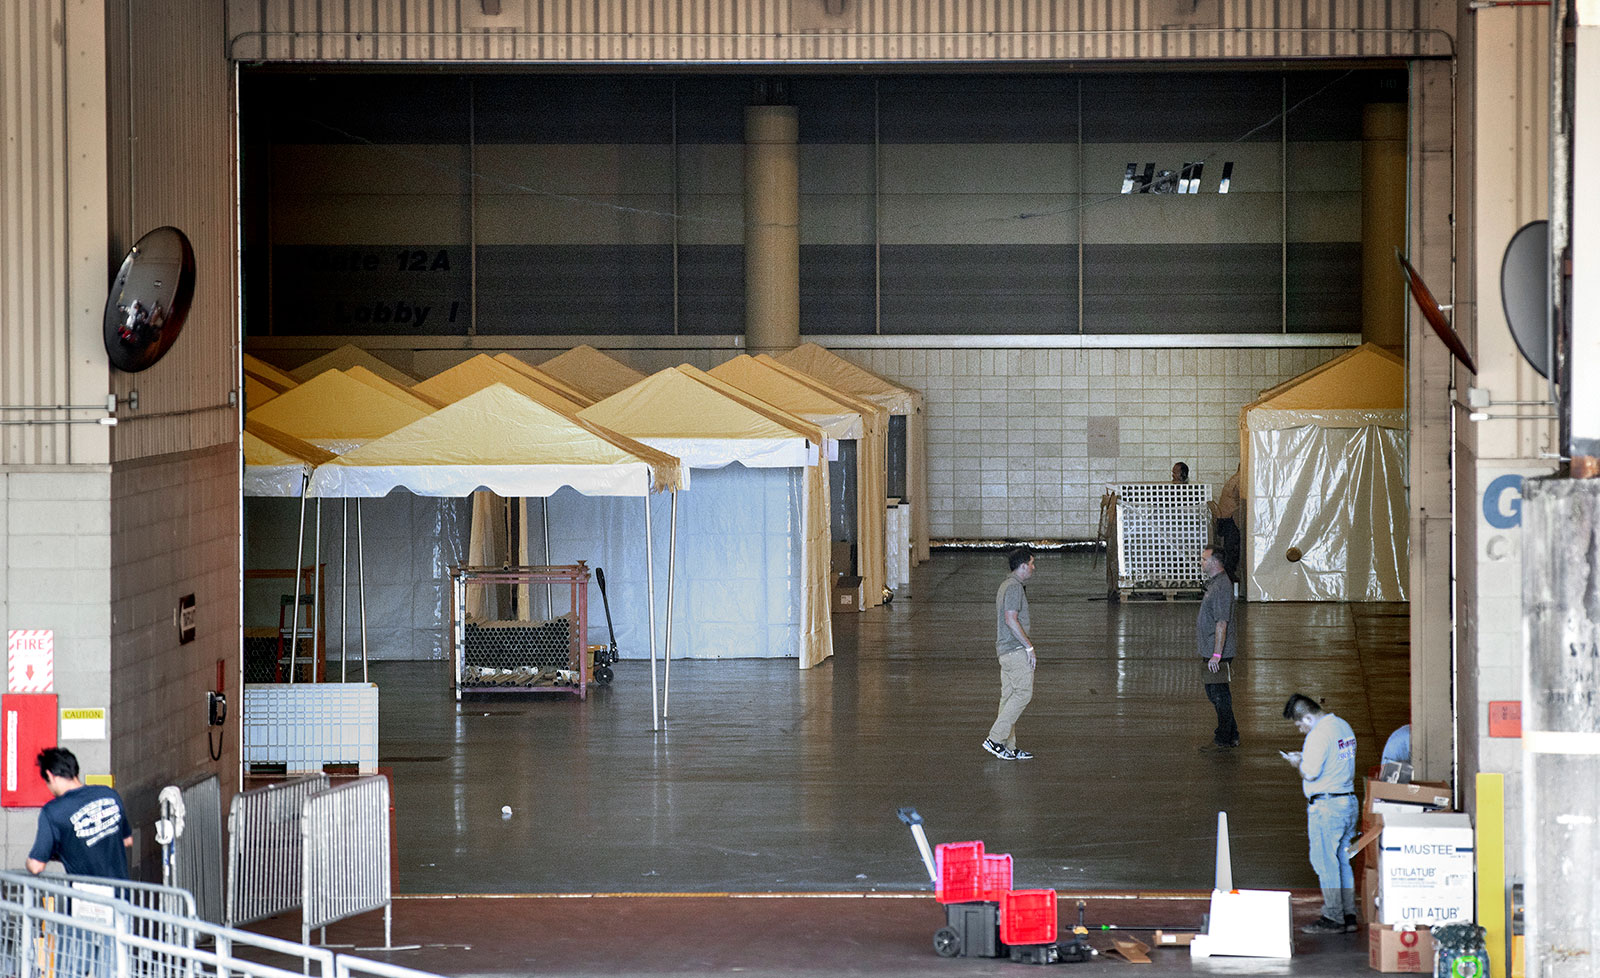 Workers convert the Ernest N. Morial Convention Center into a temporary hospital on Friday, March 27, in New Orleans, Louisiana.